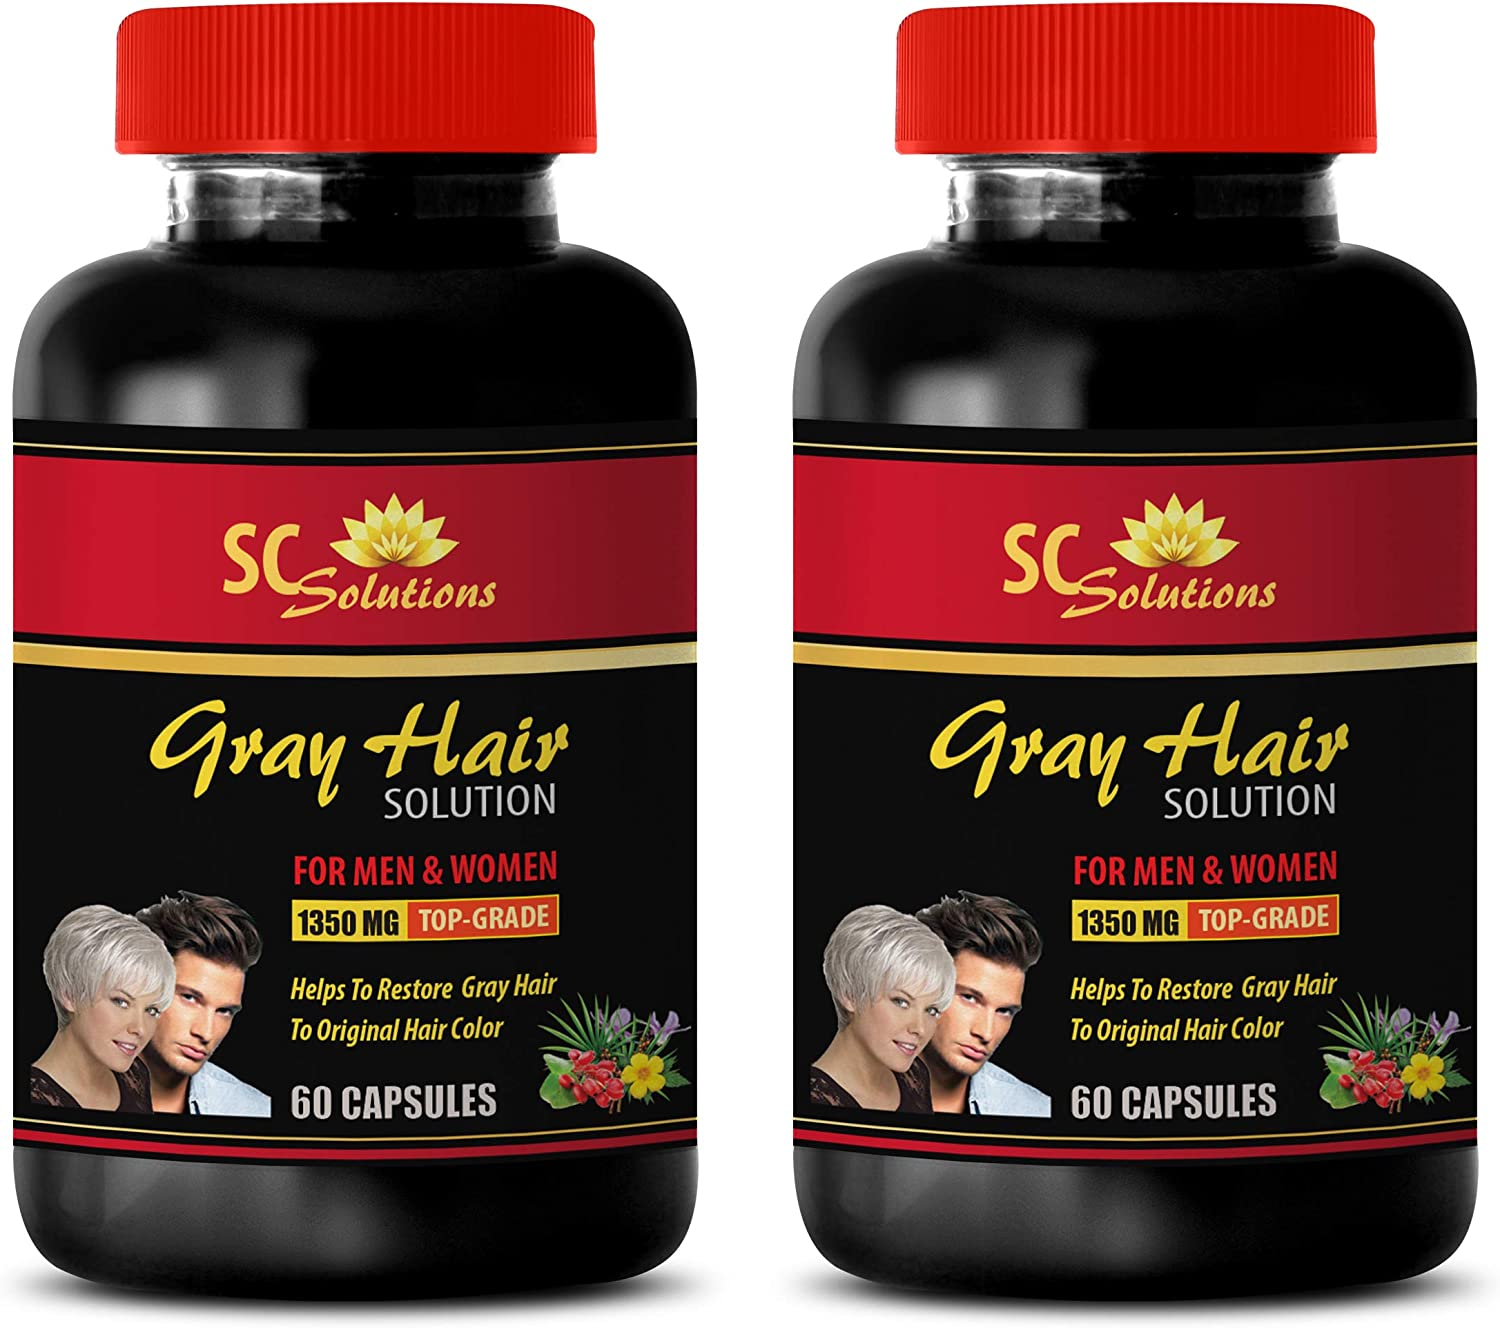 Anti-Aging Blend - Anti-Gray Hair Women Solution Ranking TOP17 and for Men Popularity